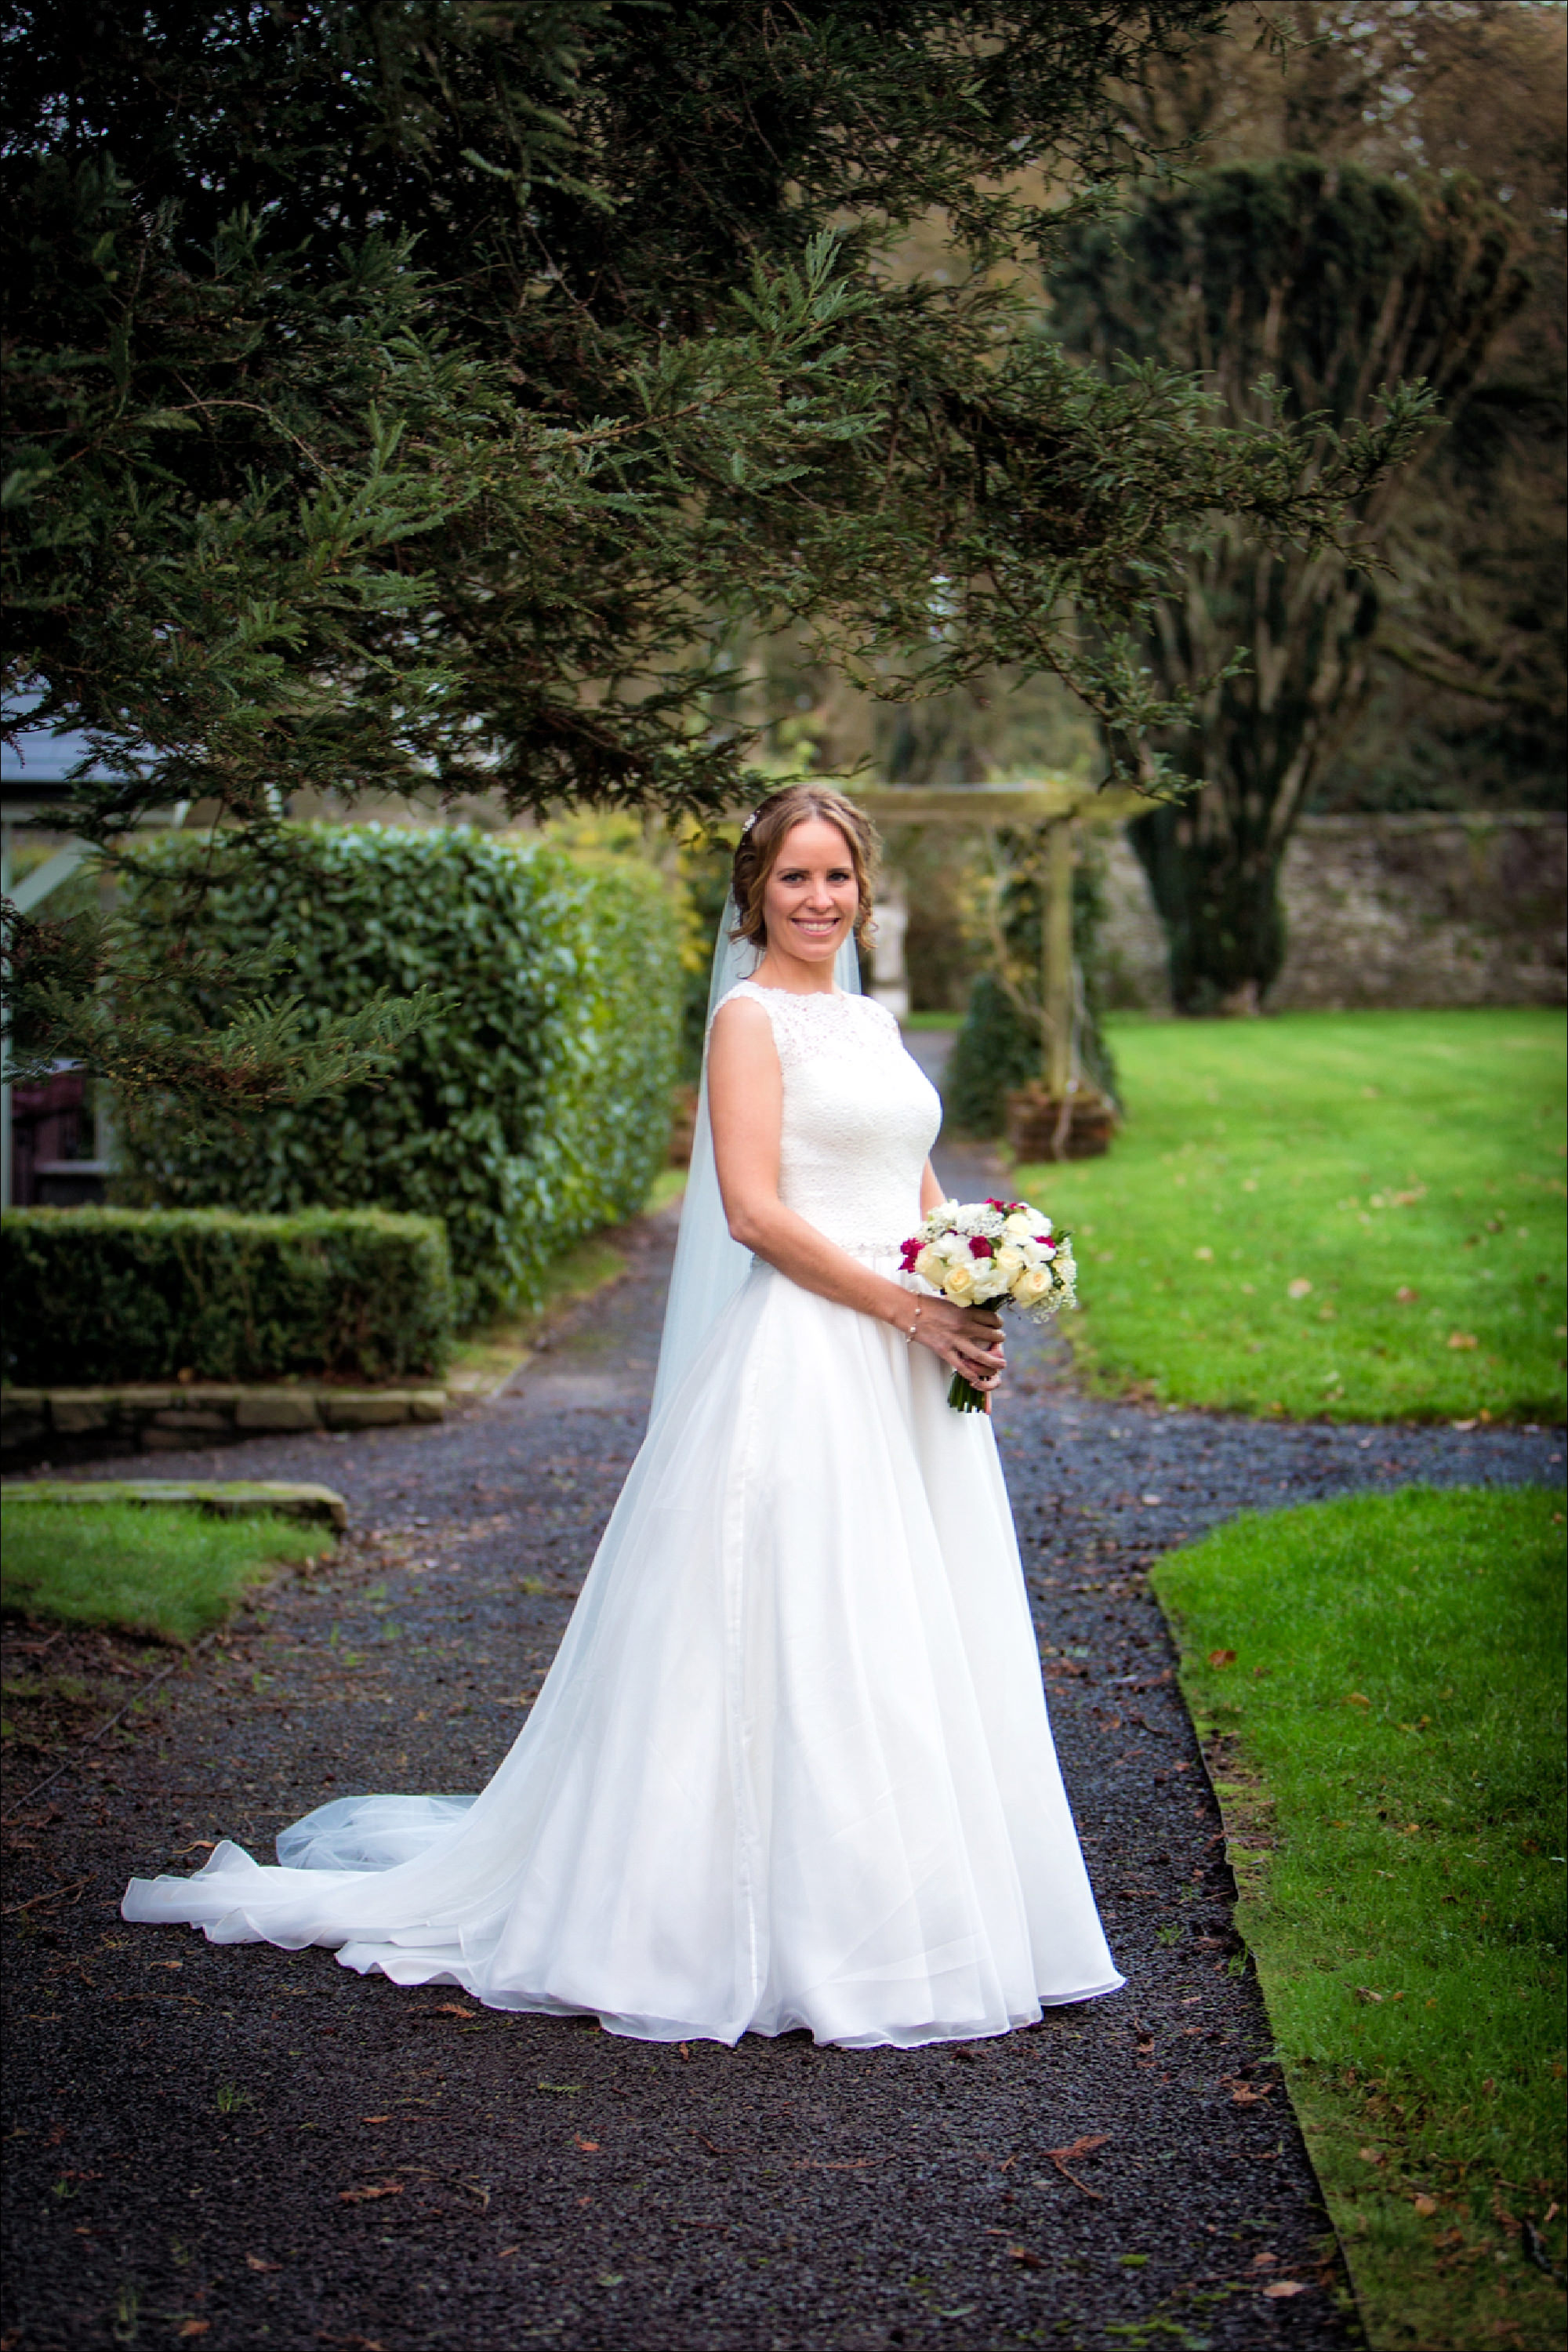 dublin wedding photographer david duignan photography tankardstown weddings slane rathfeigh church ireland 0038